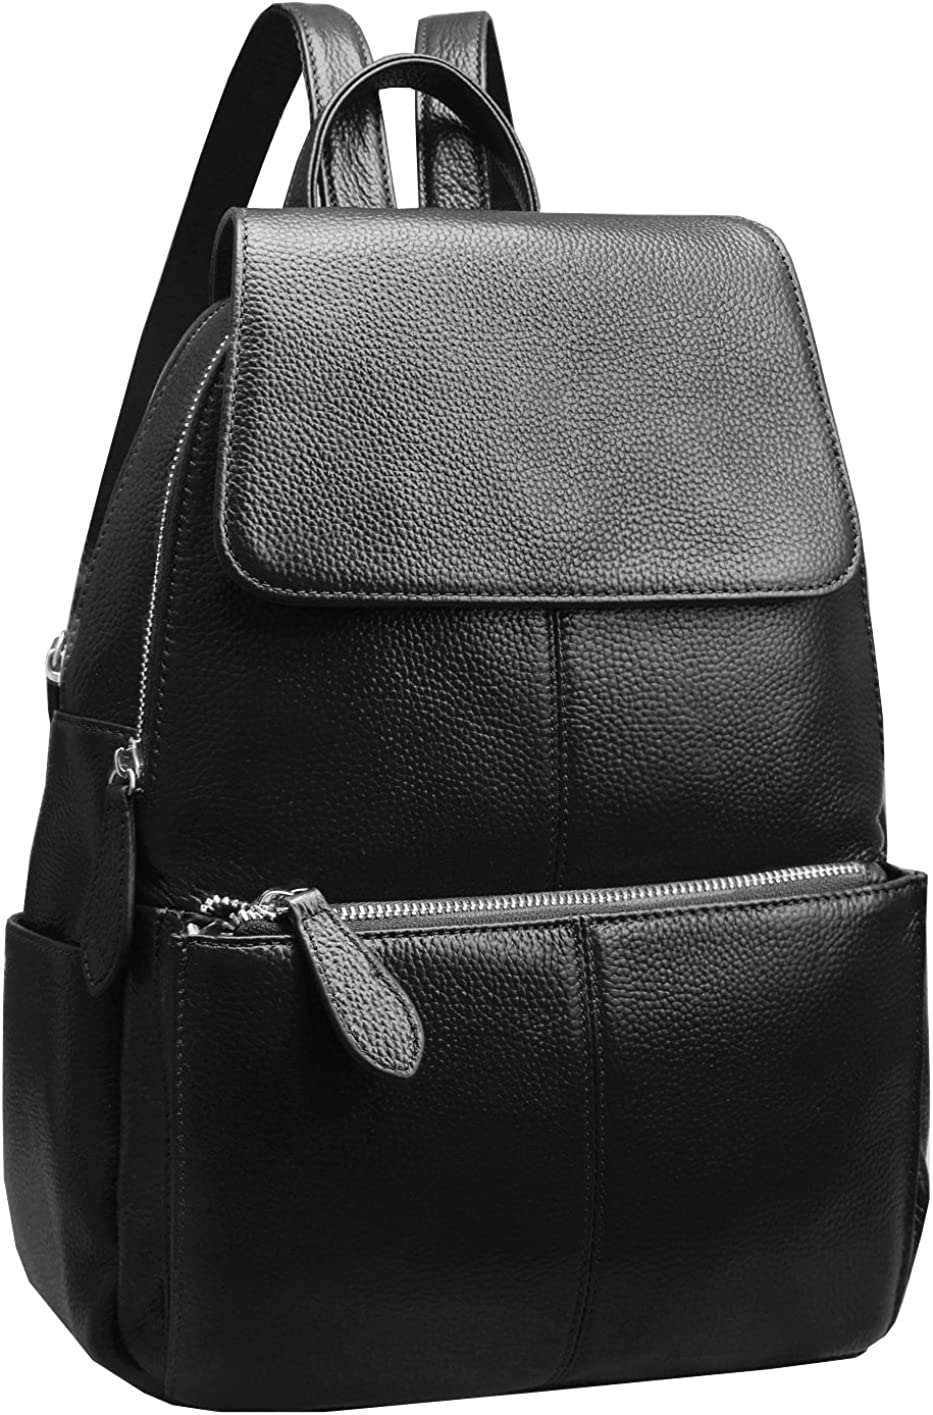 Heshe Womens Leather Backpack Casual Daypack Ladies Fashion Bag